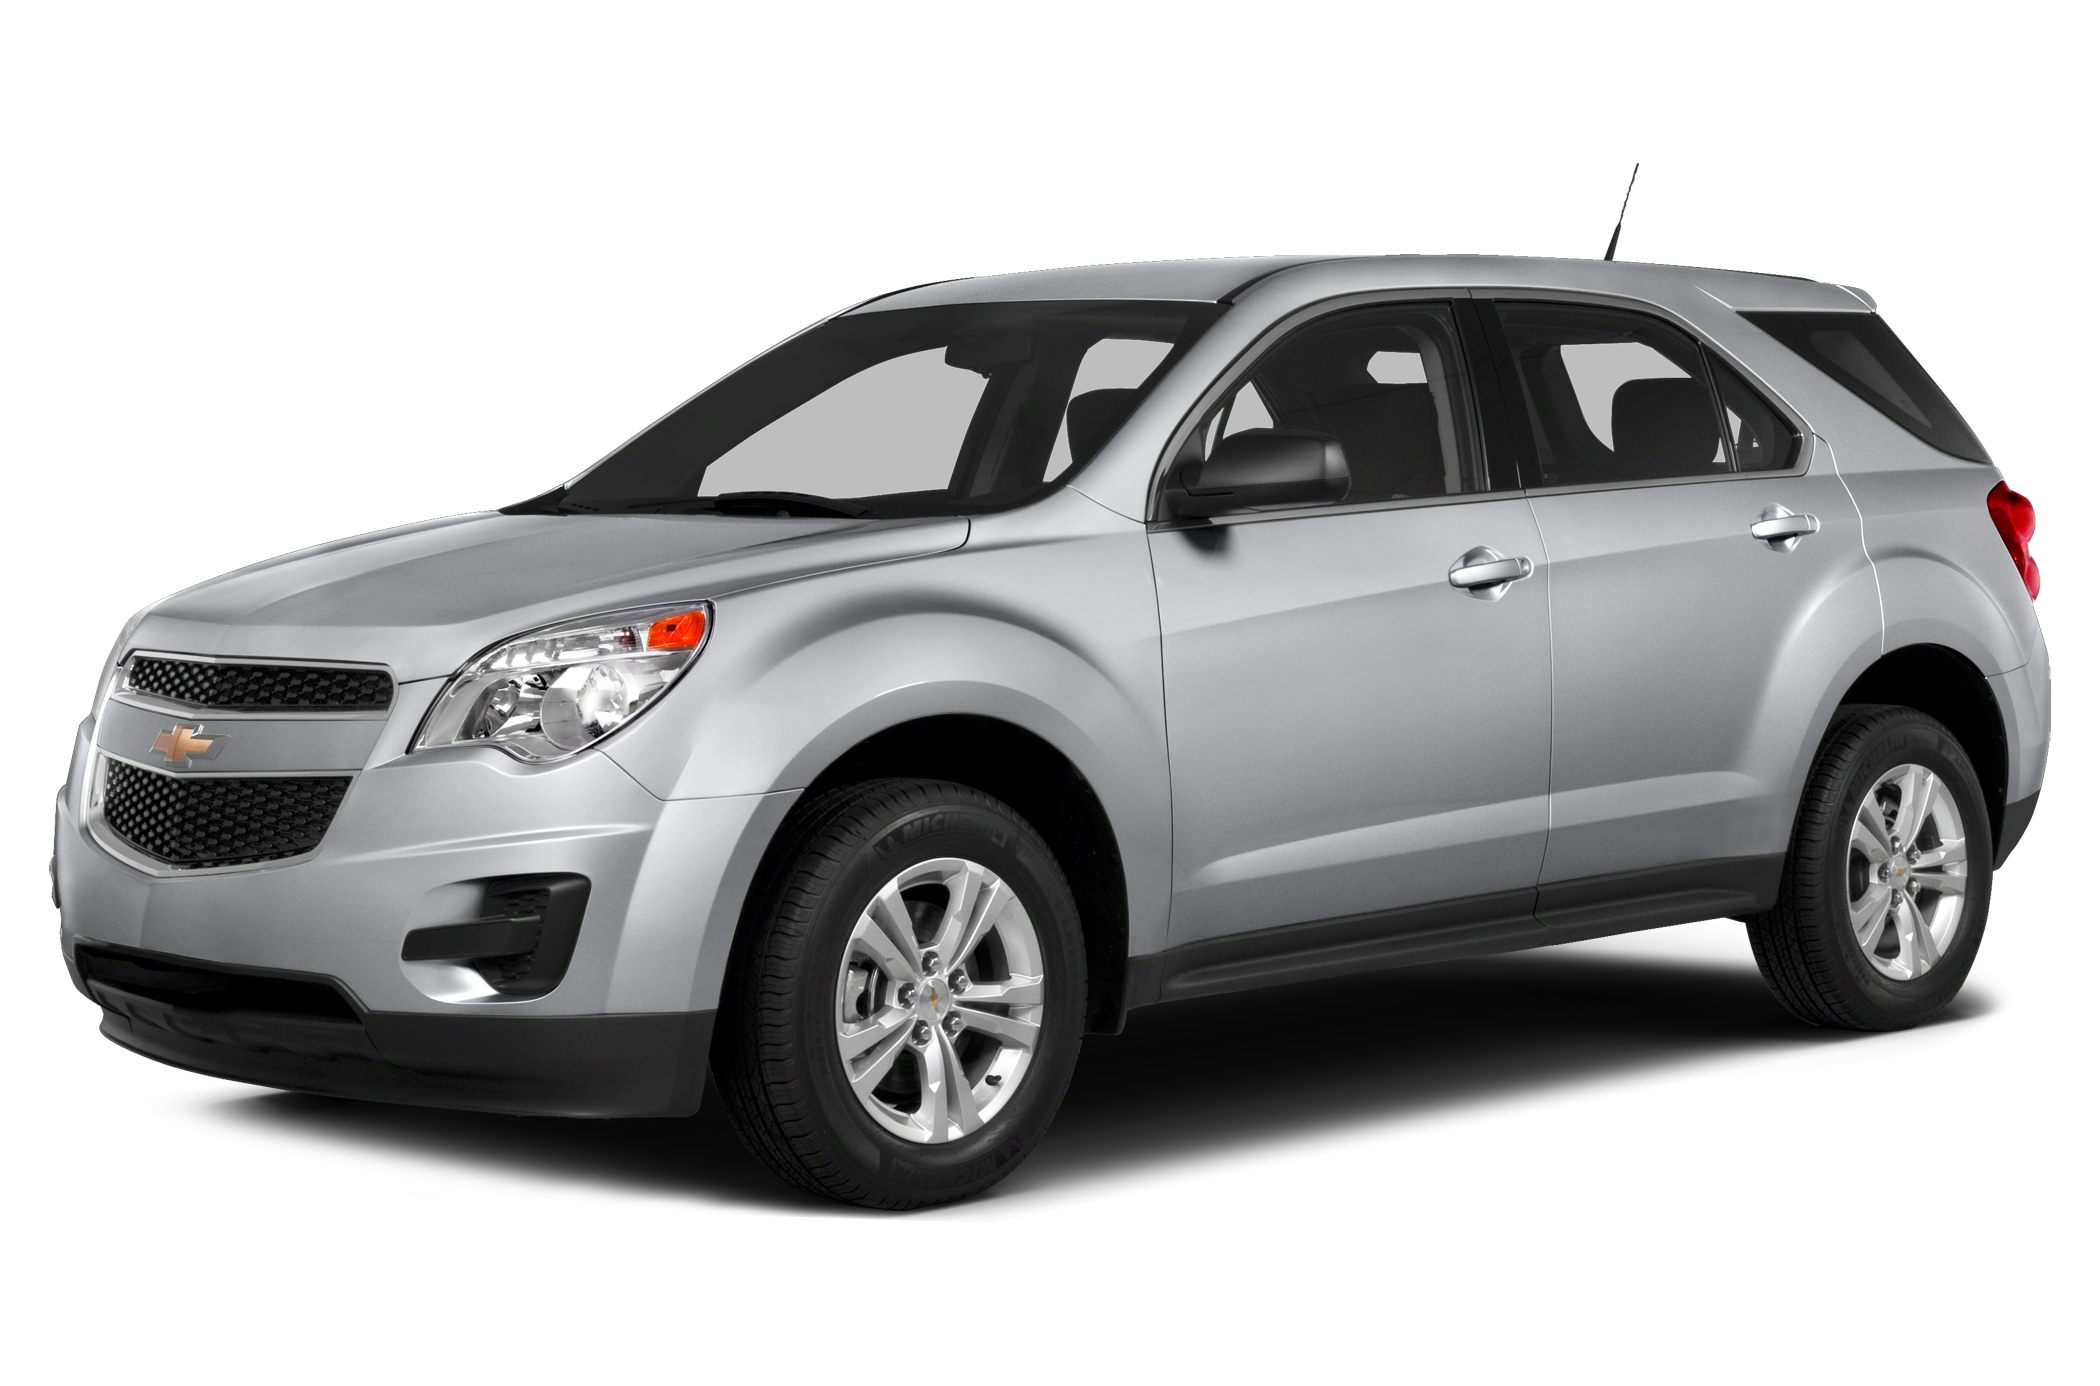 2015 Chevrolet Equinox LS SUV for sale in Westfield for $25,395 with 0 miles